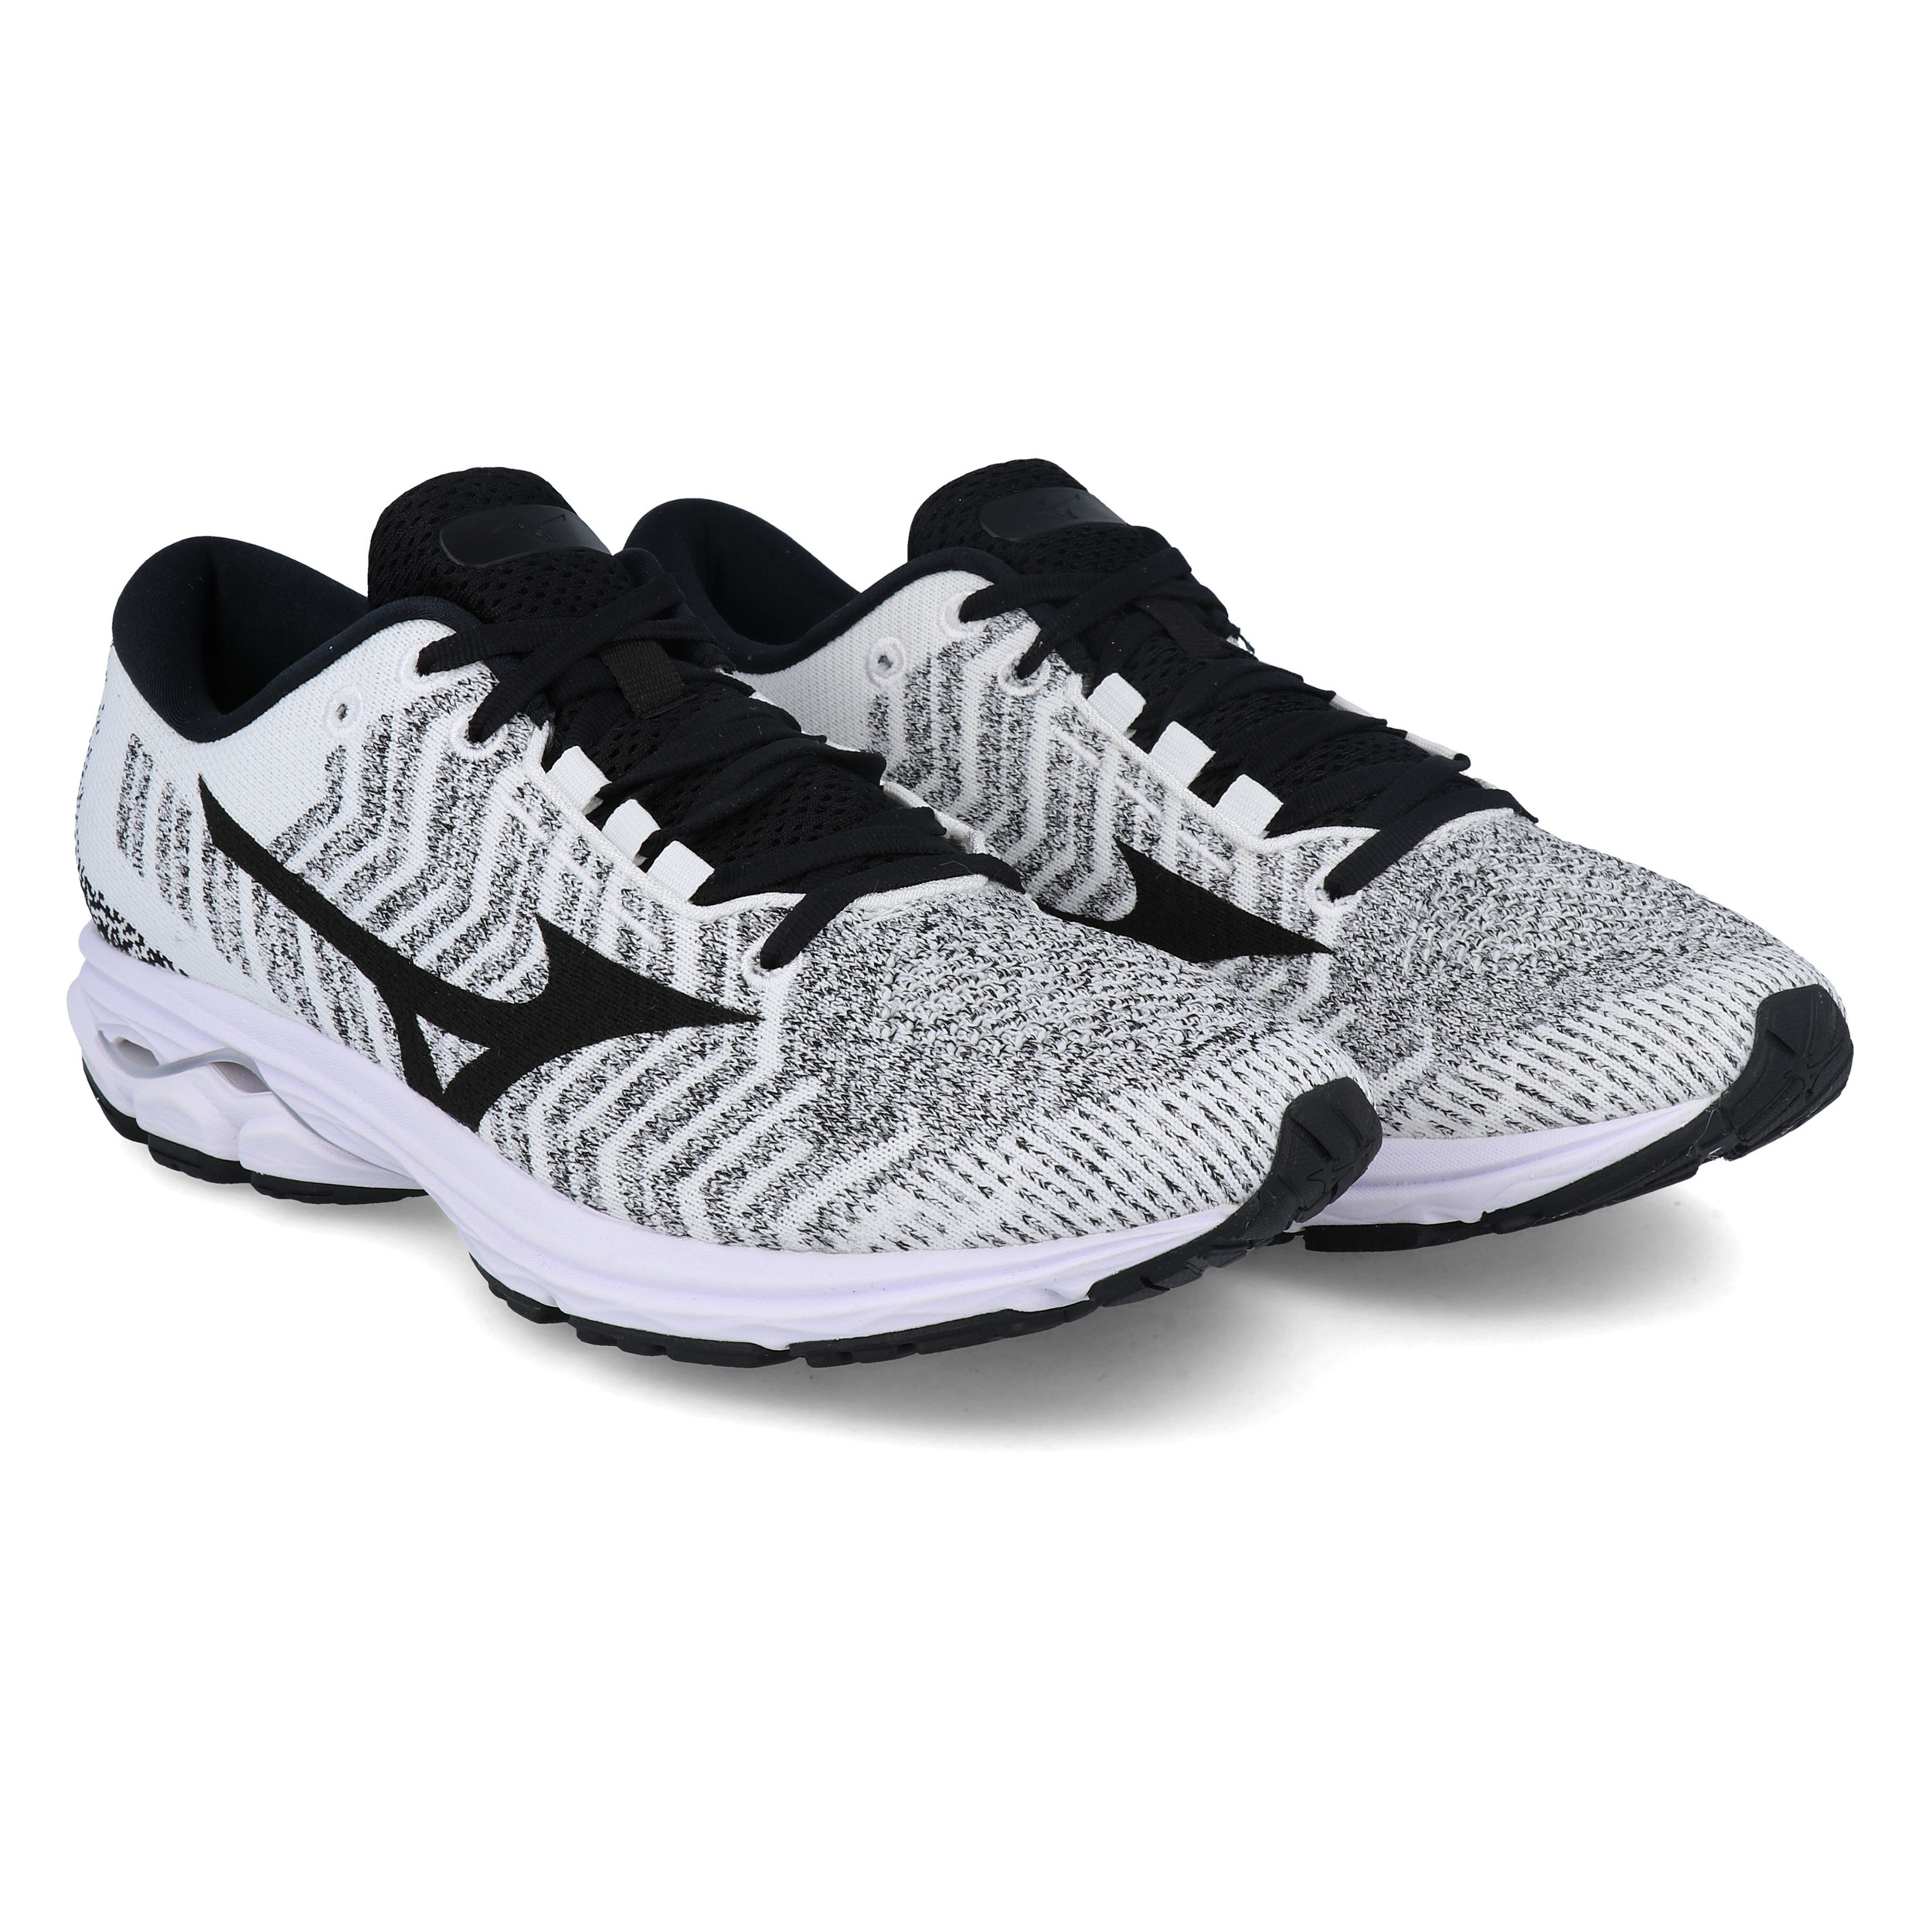 Mizuno Wave Rider Waveknit 3 Running Shoes